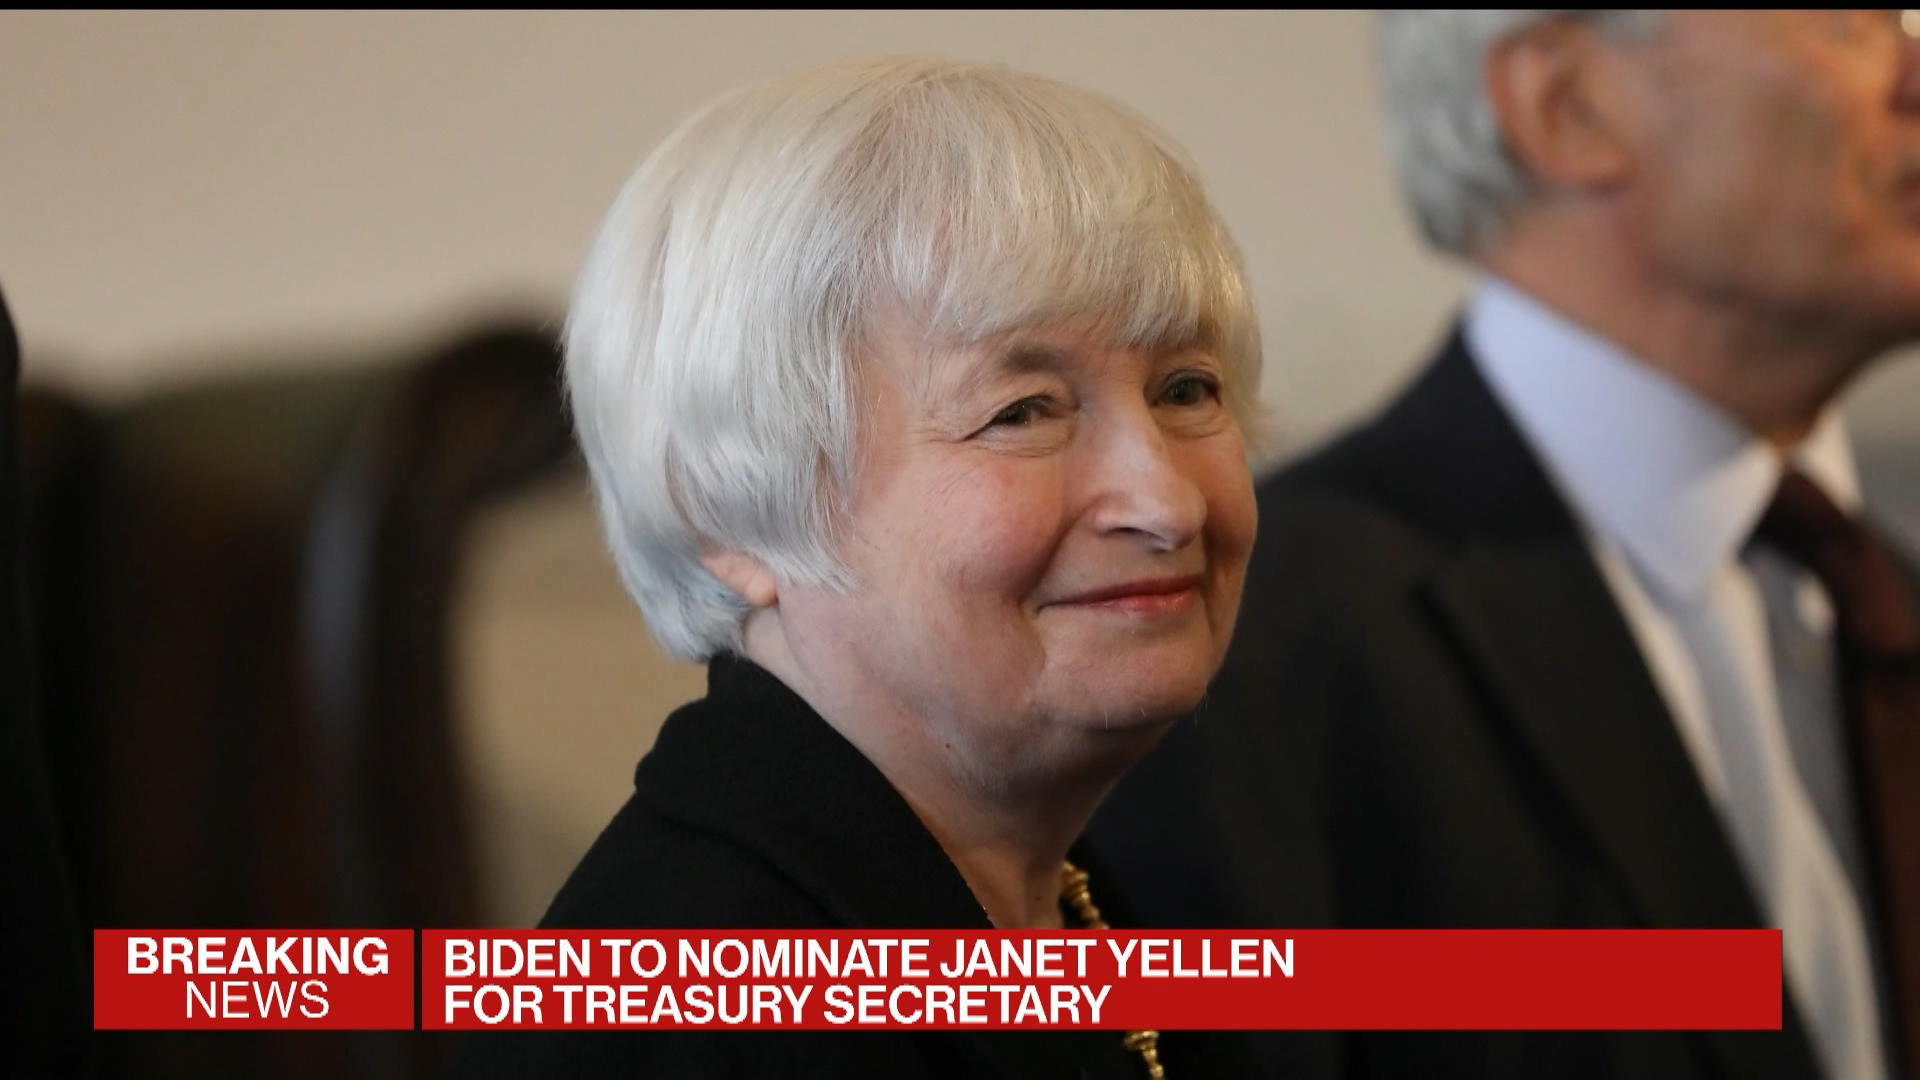 weqgm9crmu8shm https www bloomberg com news articles 2020 11 23 biden plans to nominate janet yellen as treasury secretary